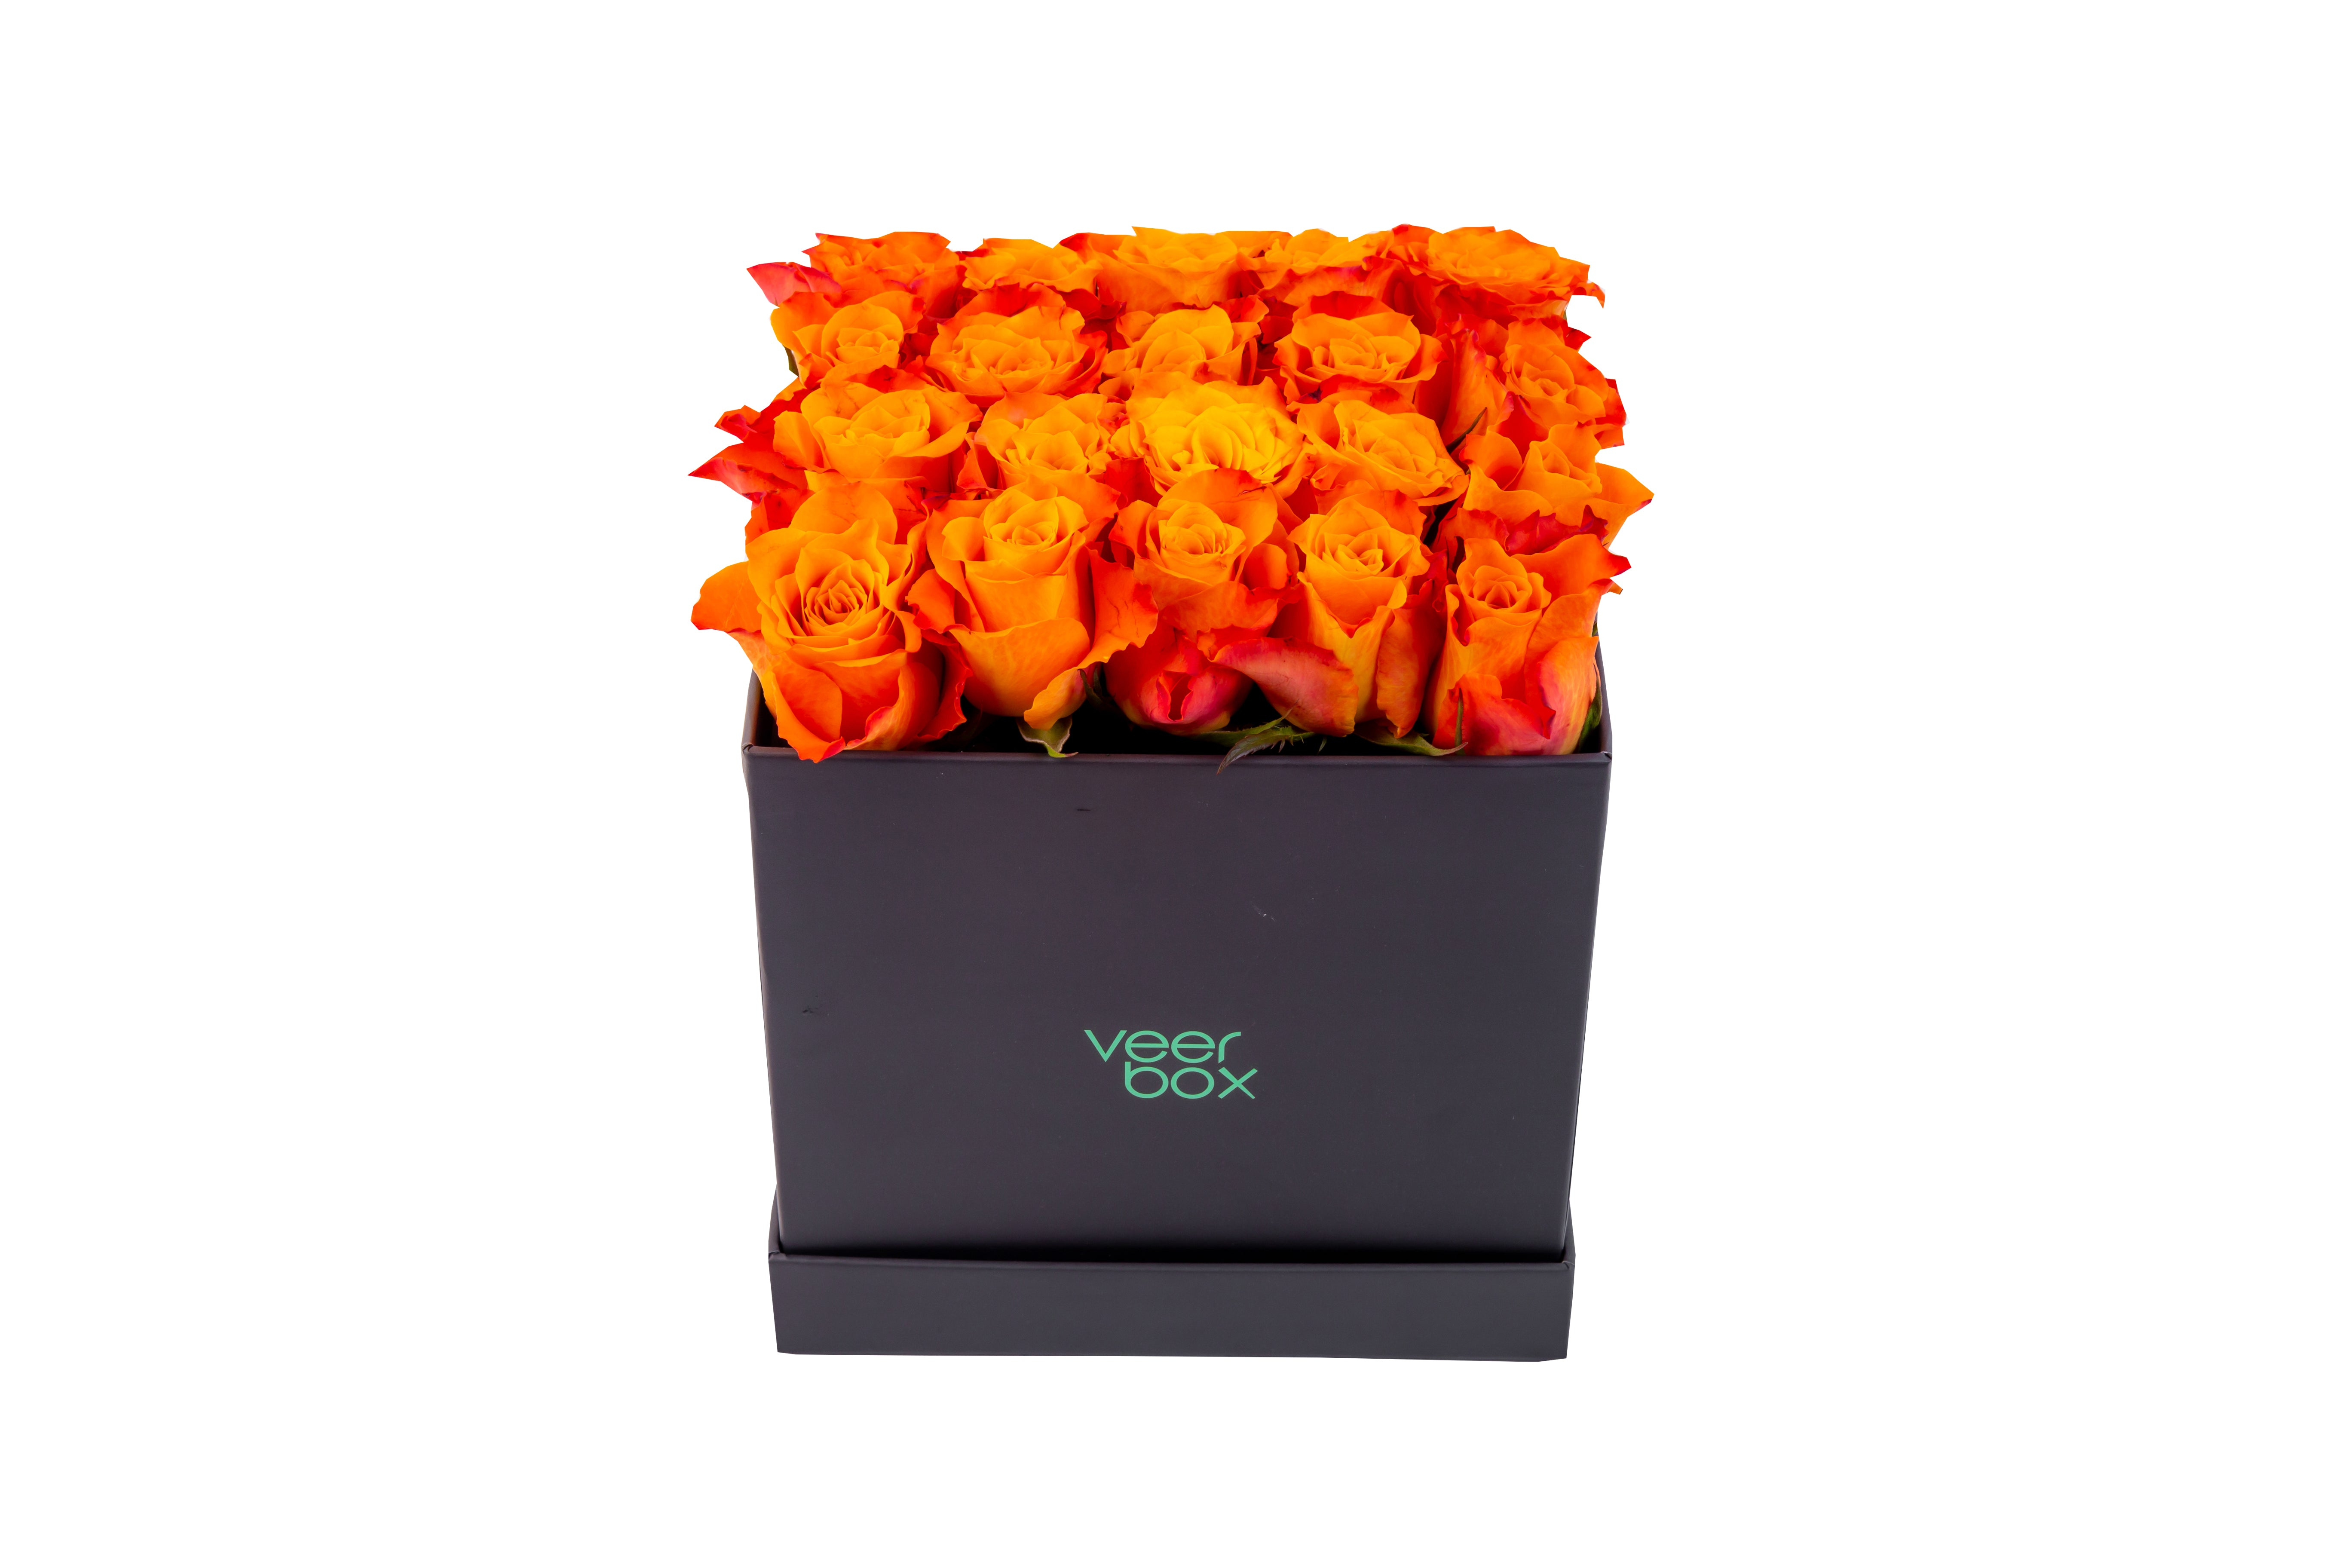 Infinite Orange Love Veerbox